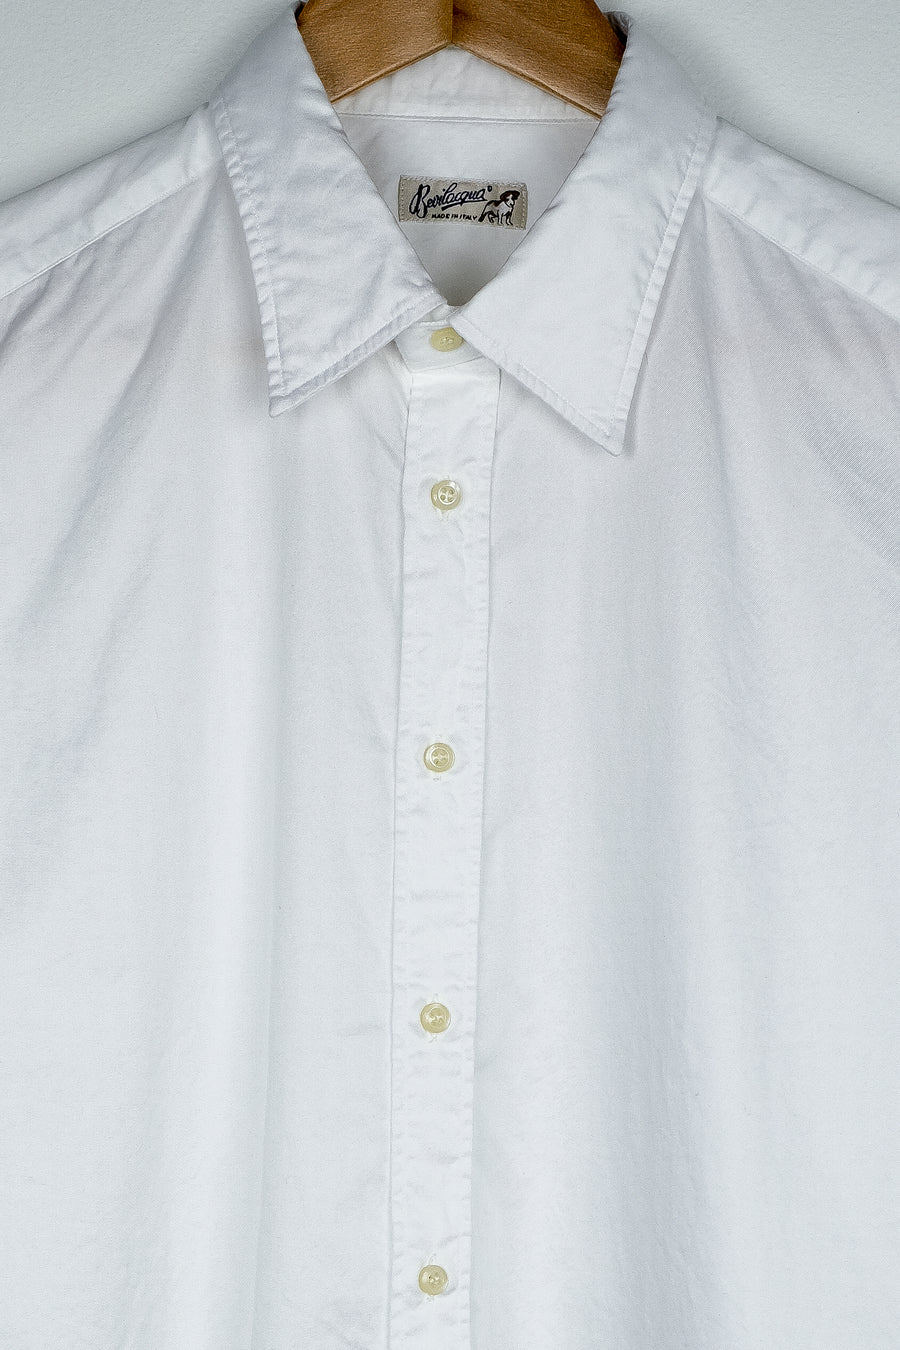 Belvilacqua Plain Twill Cotton Shirt